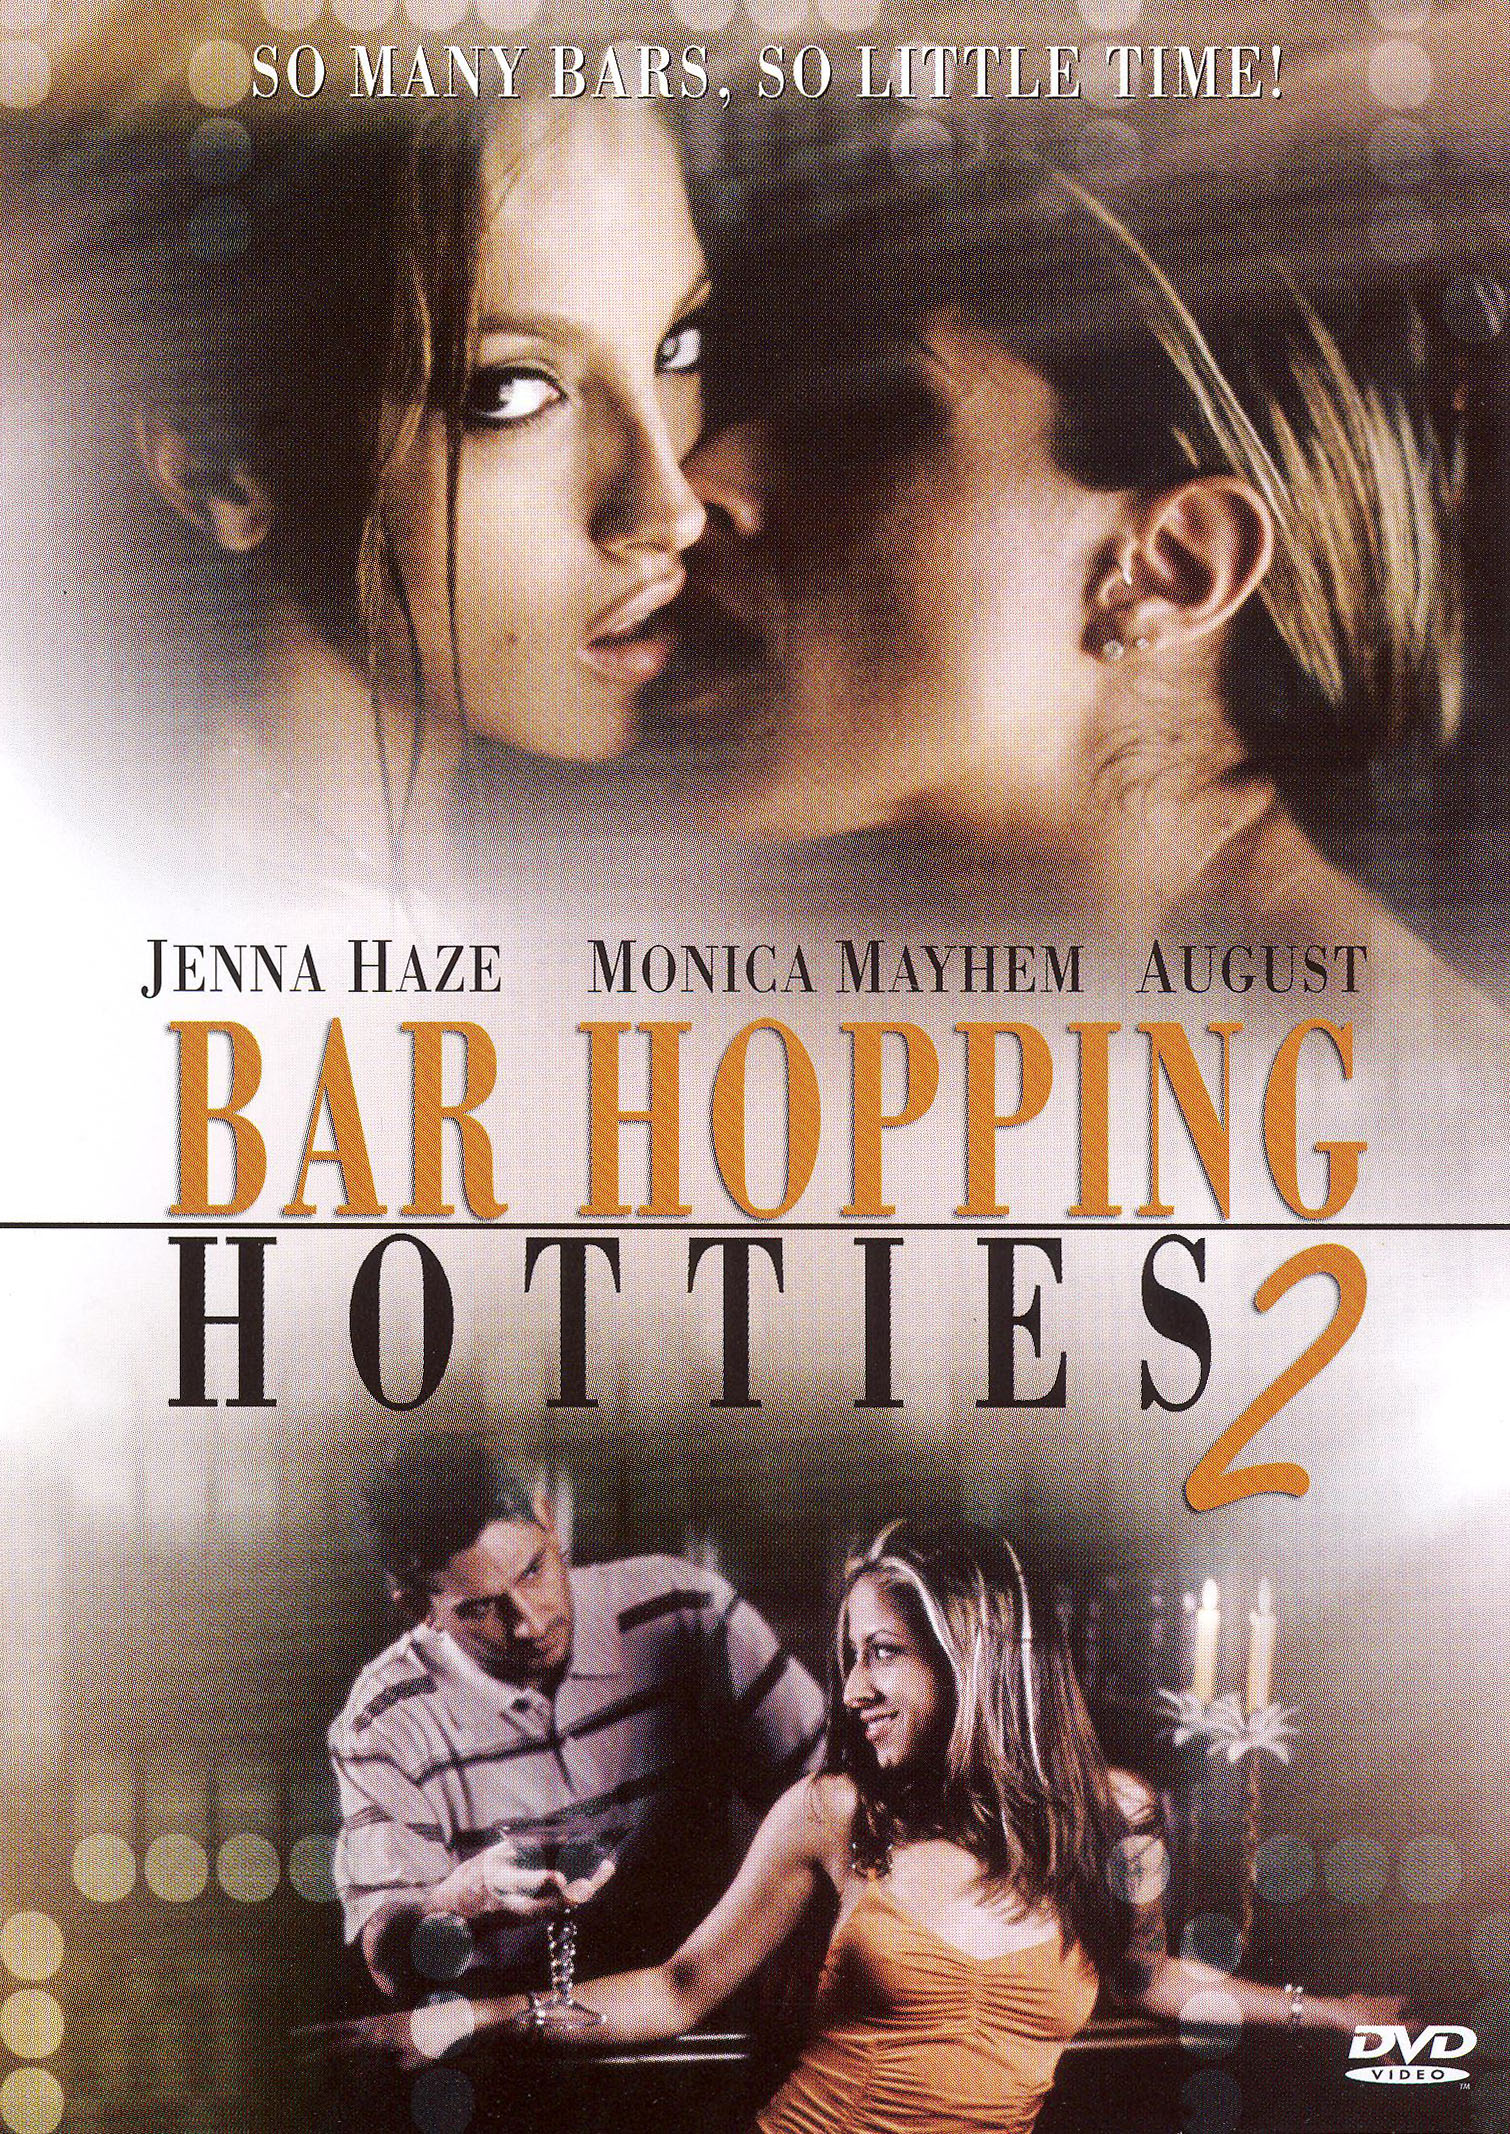 Bar Hopping Hotties 2